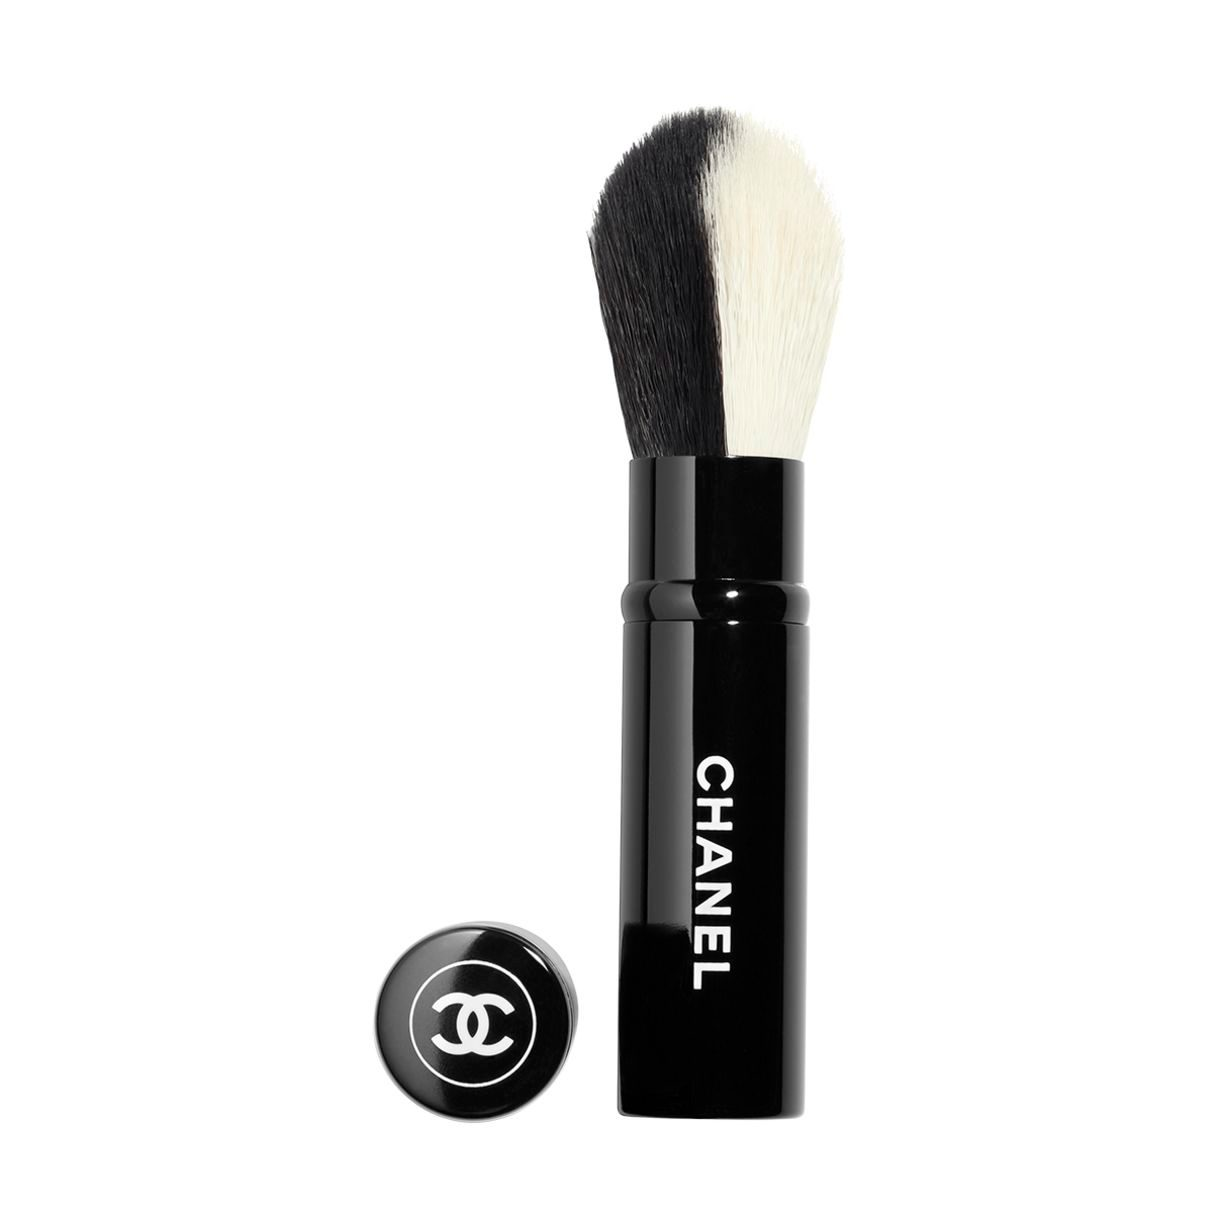 LES PINCEAUX DE CHANEL RETRACTABLE DUAL-HEAD FACE BRUSH BLUSH/HIGHLIGHTER